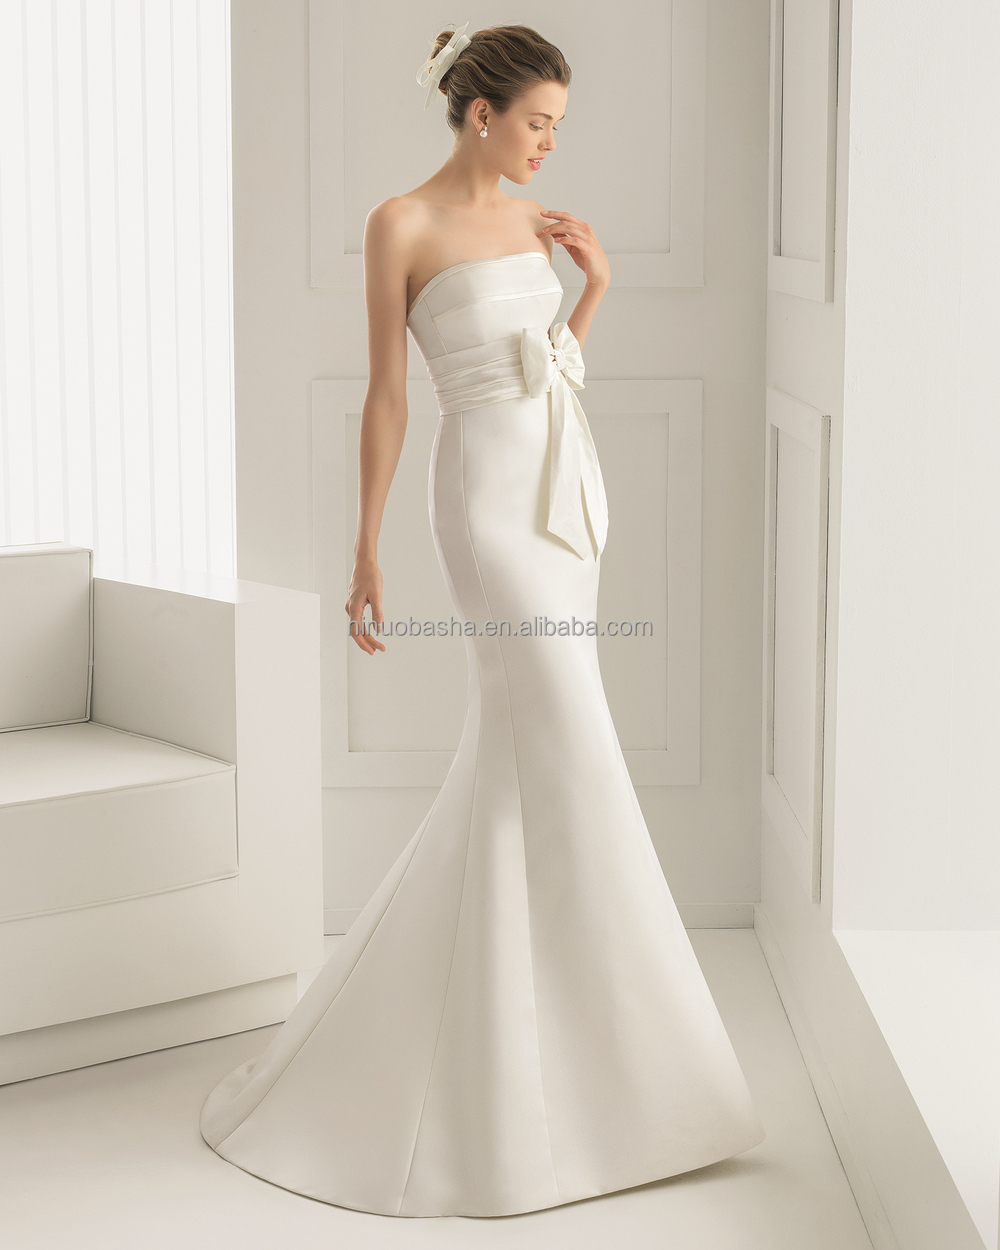 Wholesale 2015 unique silk satin wedding dress and for Satin silk wedding dresses